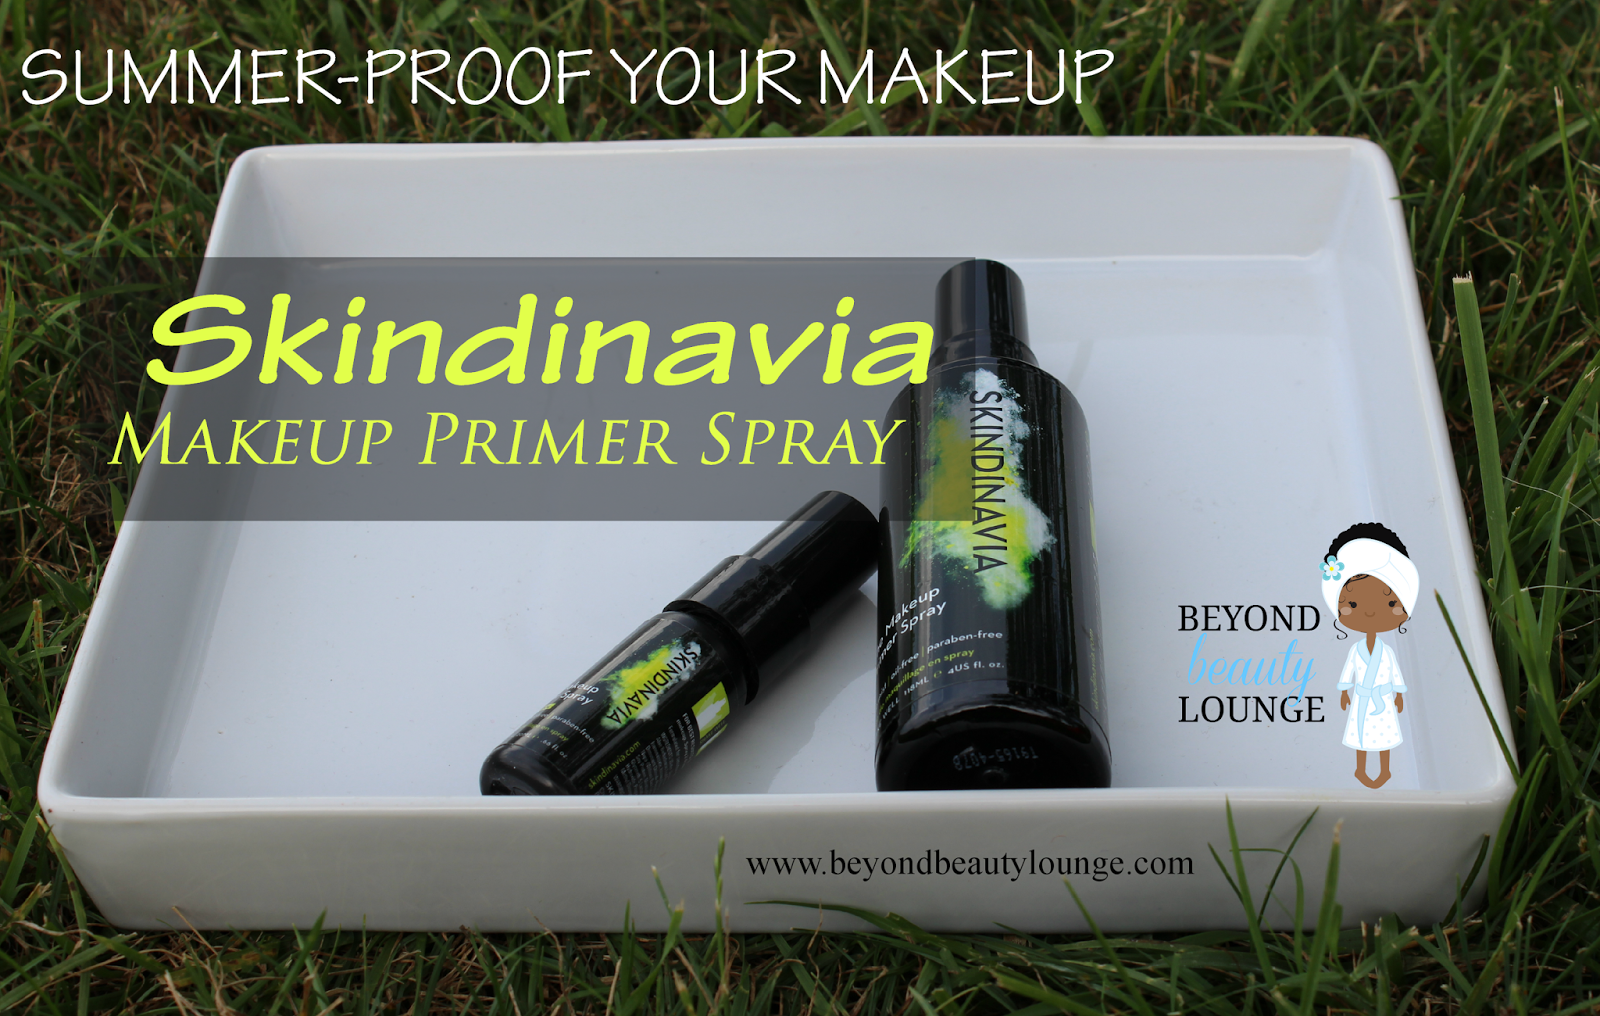 Skindinavia Makeup Primer Spray Review Makeup primer